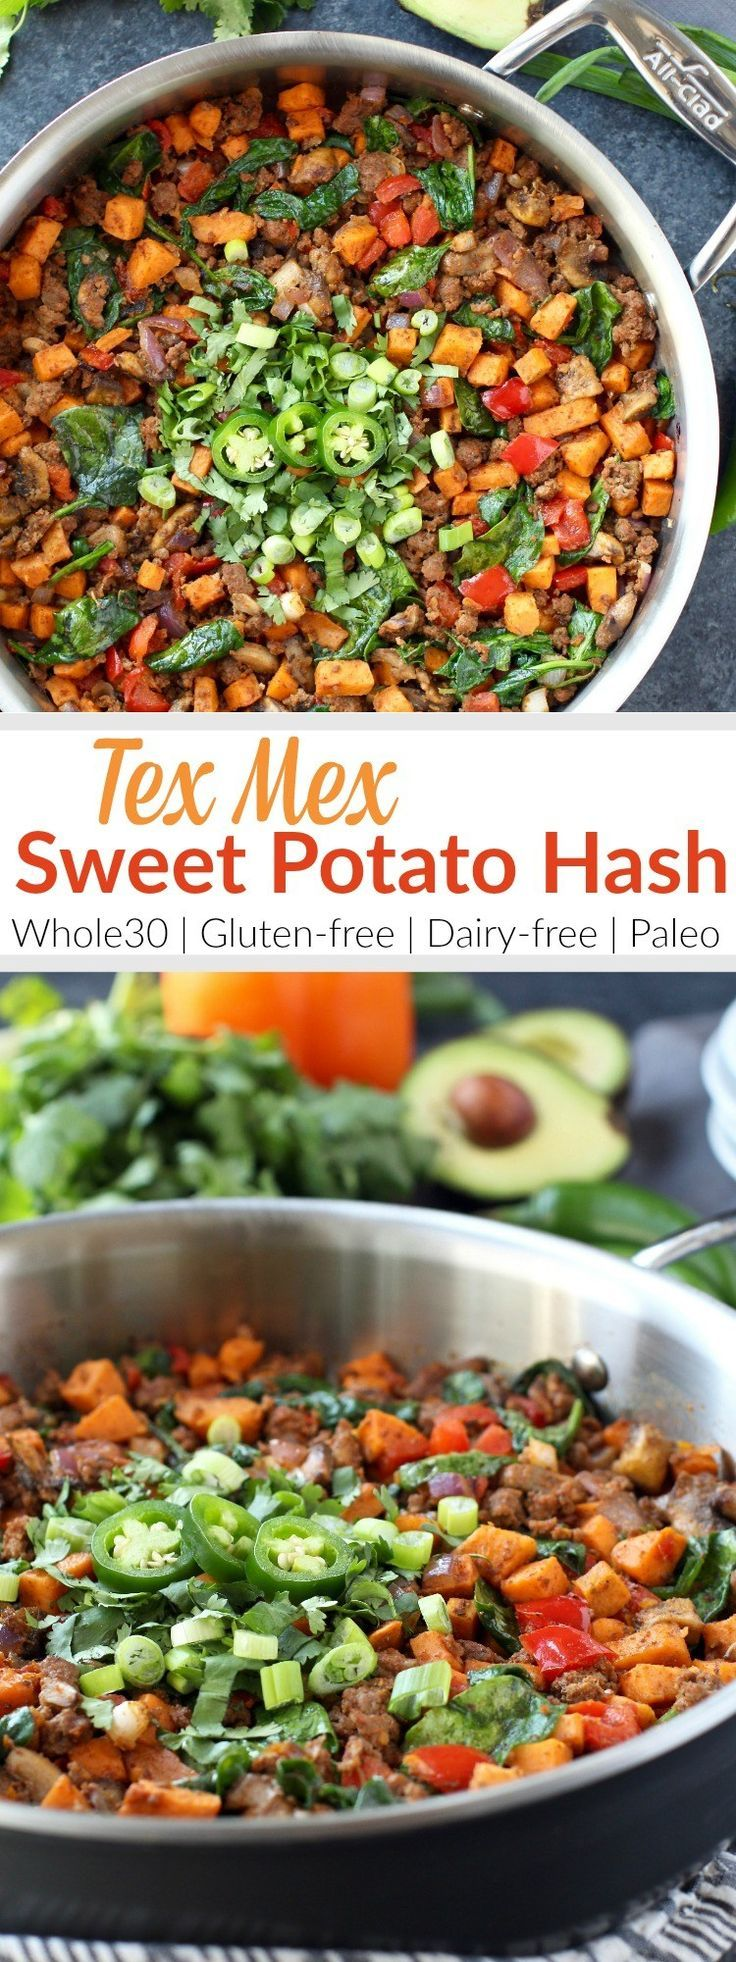 Make good use of taco meat leftovers by giving this easy Sweet Potato Tex Mex Hash recipe a try. A tasty Whole30 and egg-free breakfast option.| http://therealfoodrds.com/tex-mex-sweet-potato-hash/